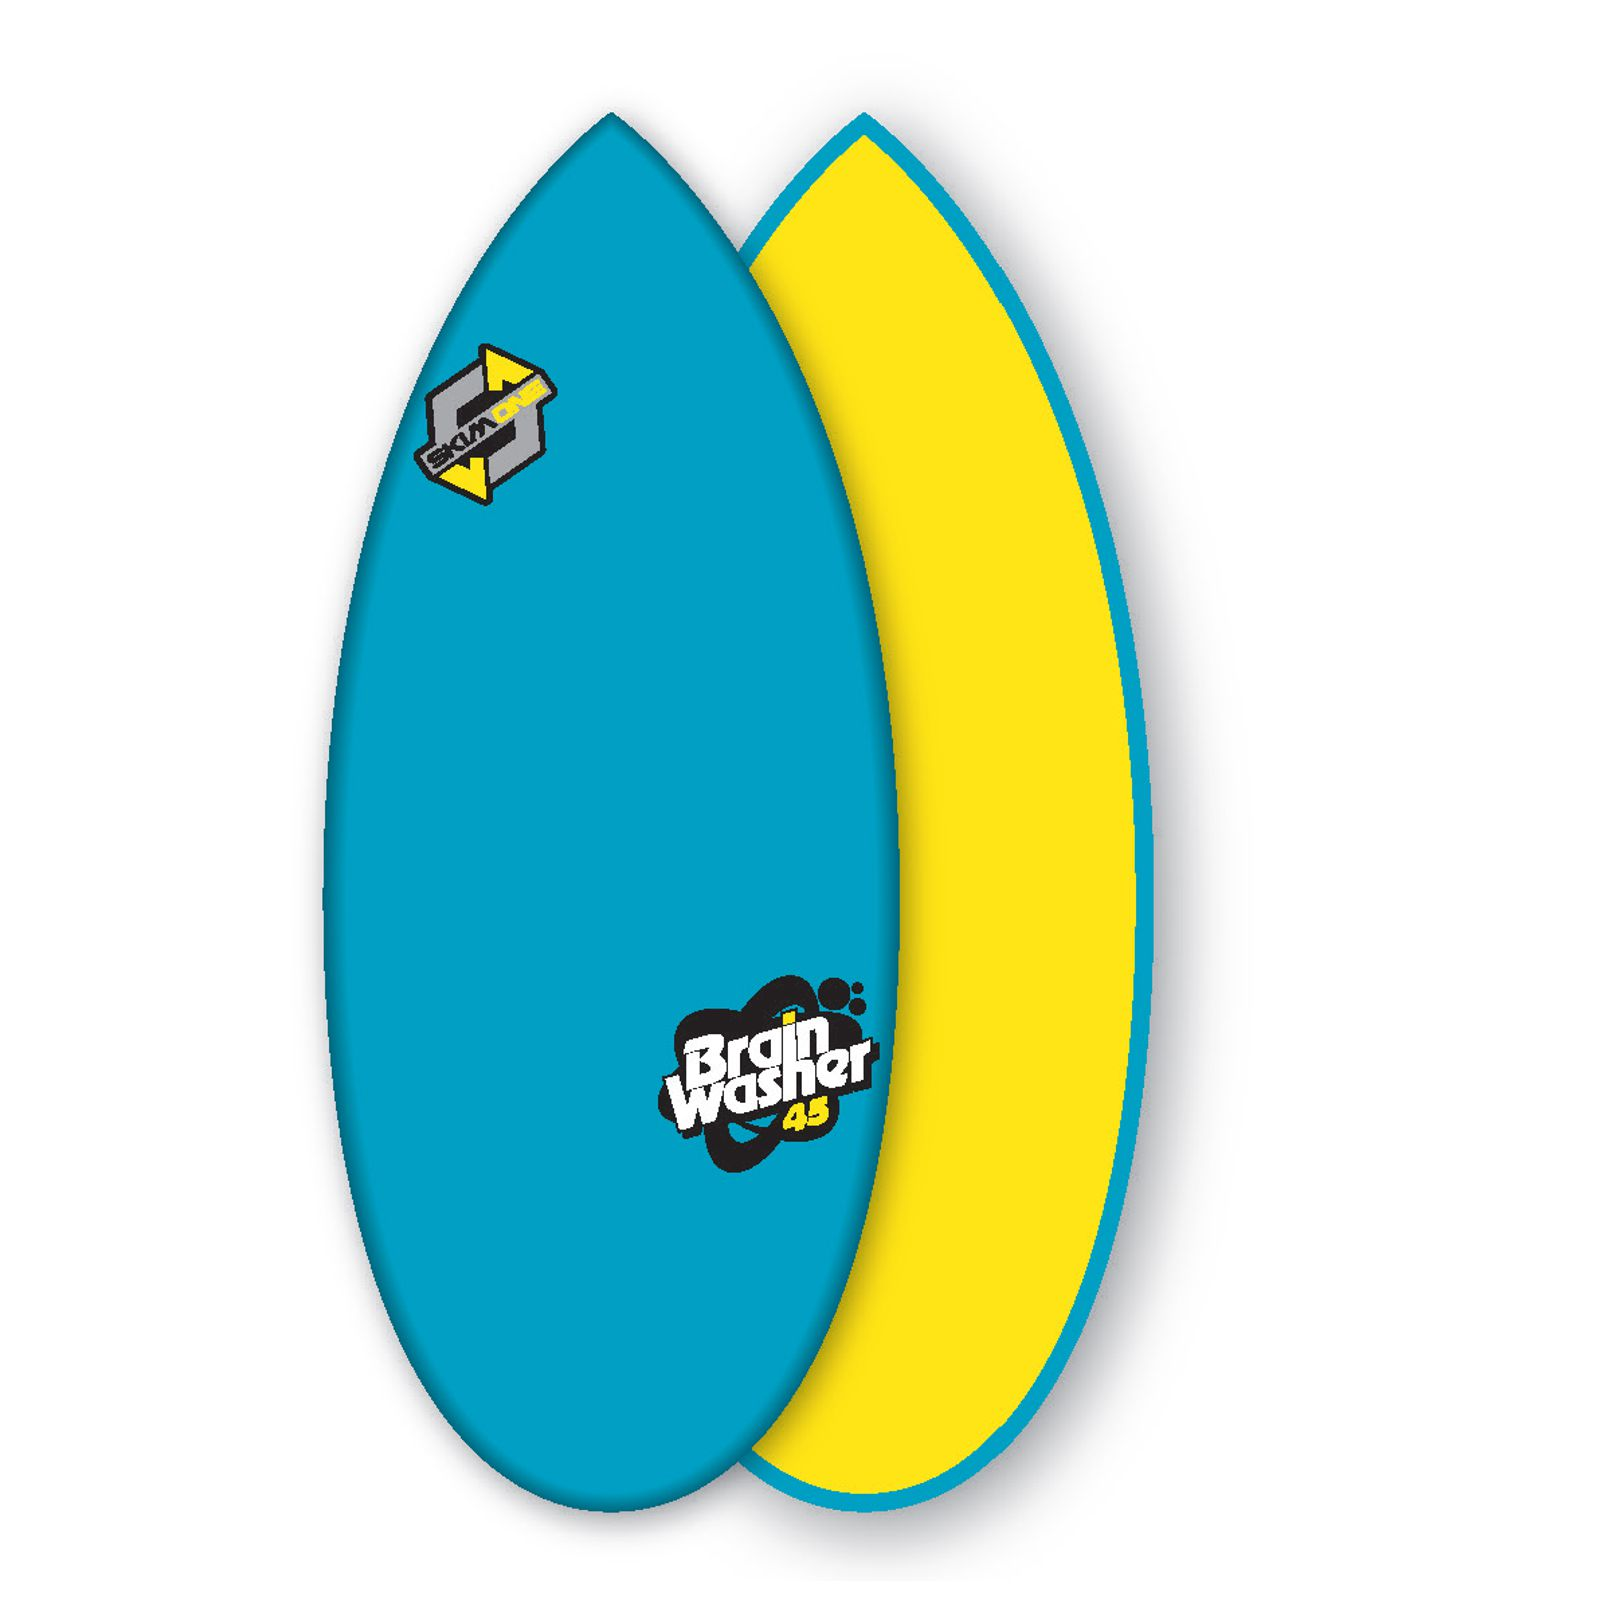 Skimboard SkimOne EPS Epoxy Bambus 45 Brain Washer